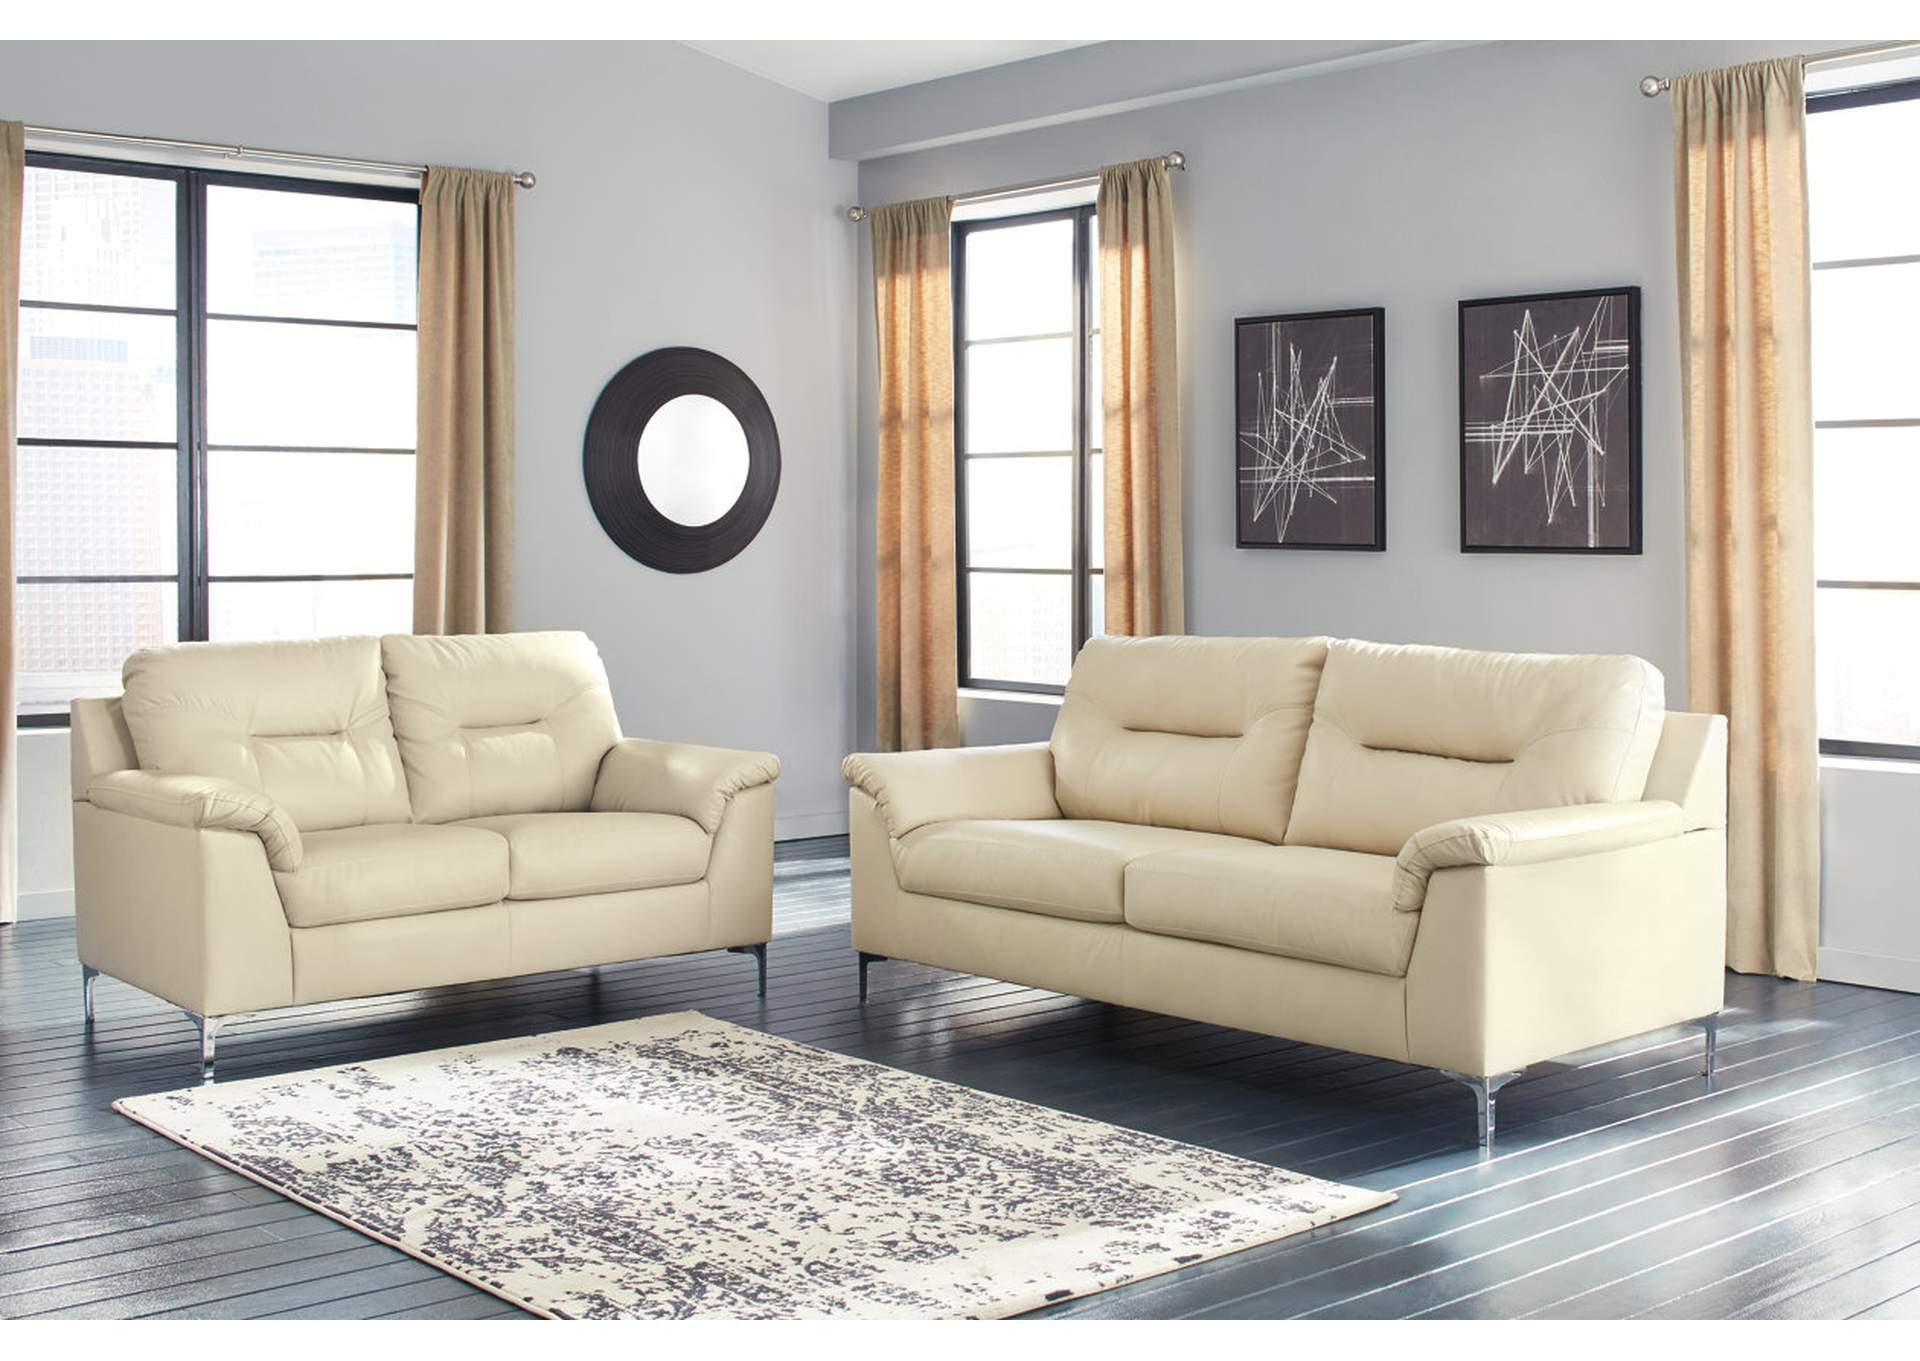 Tensas Ice Sofa Loveseat,Signature Design By Ashley